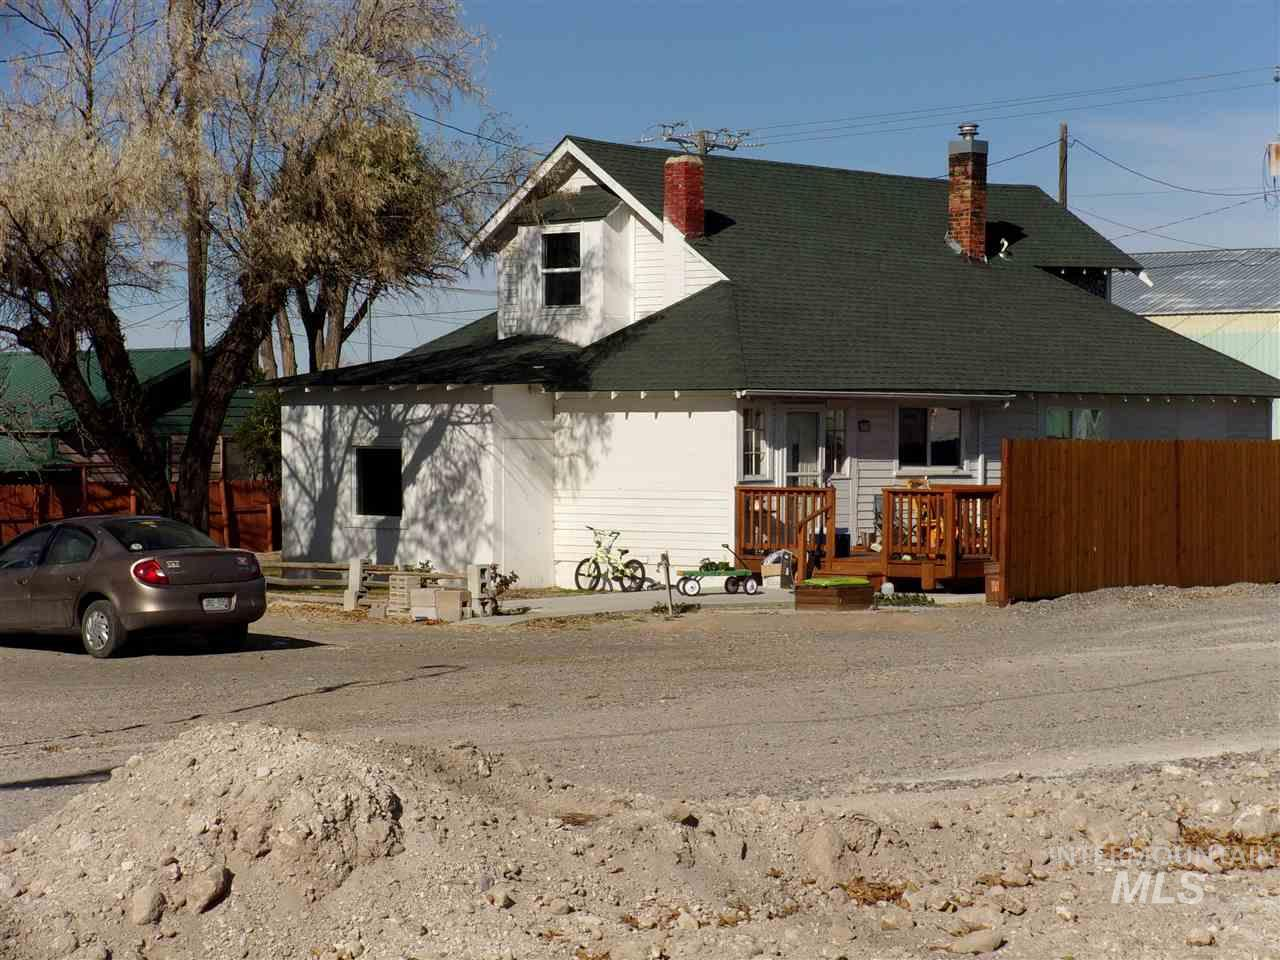 1225 Burley Ave, Buhl, Idaho 83316, Business/Commercial For Sale, Price $379,000, 98721335